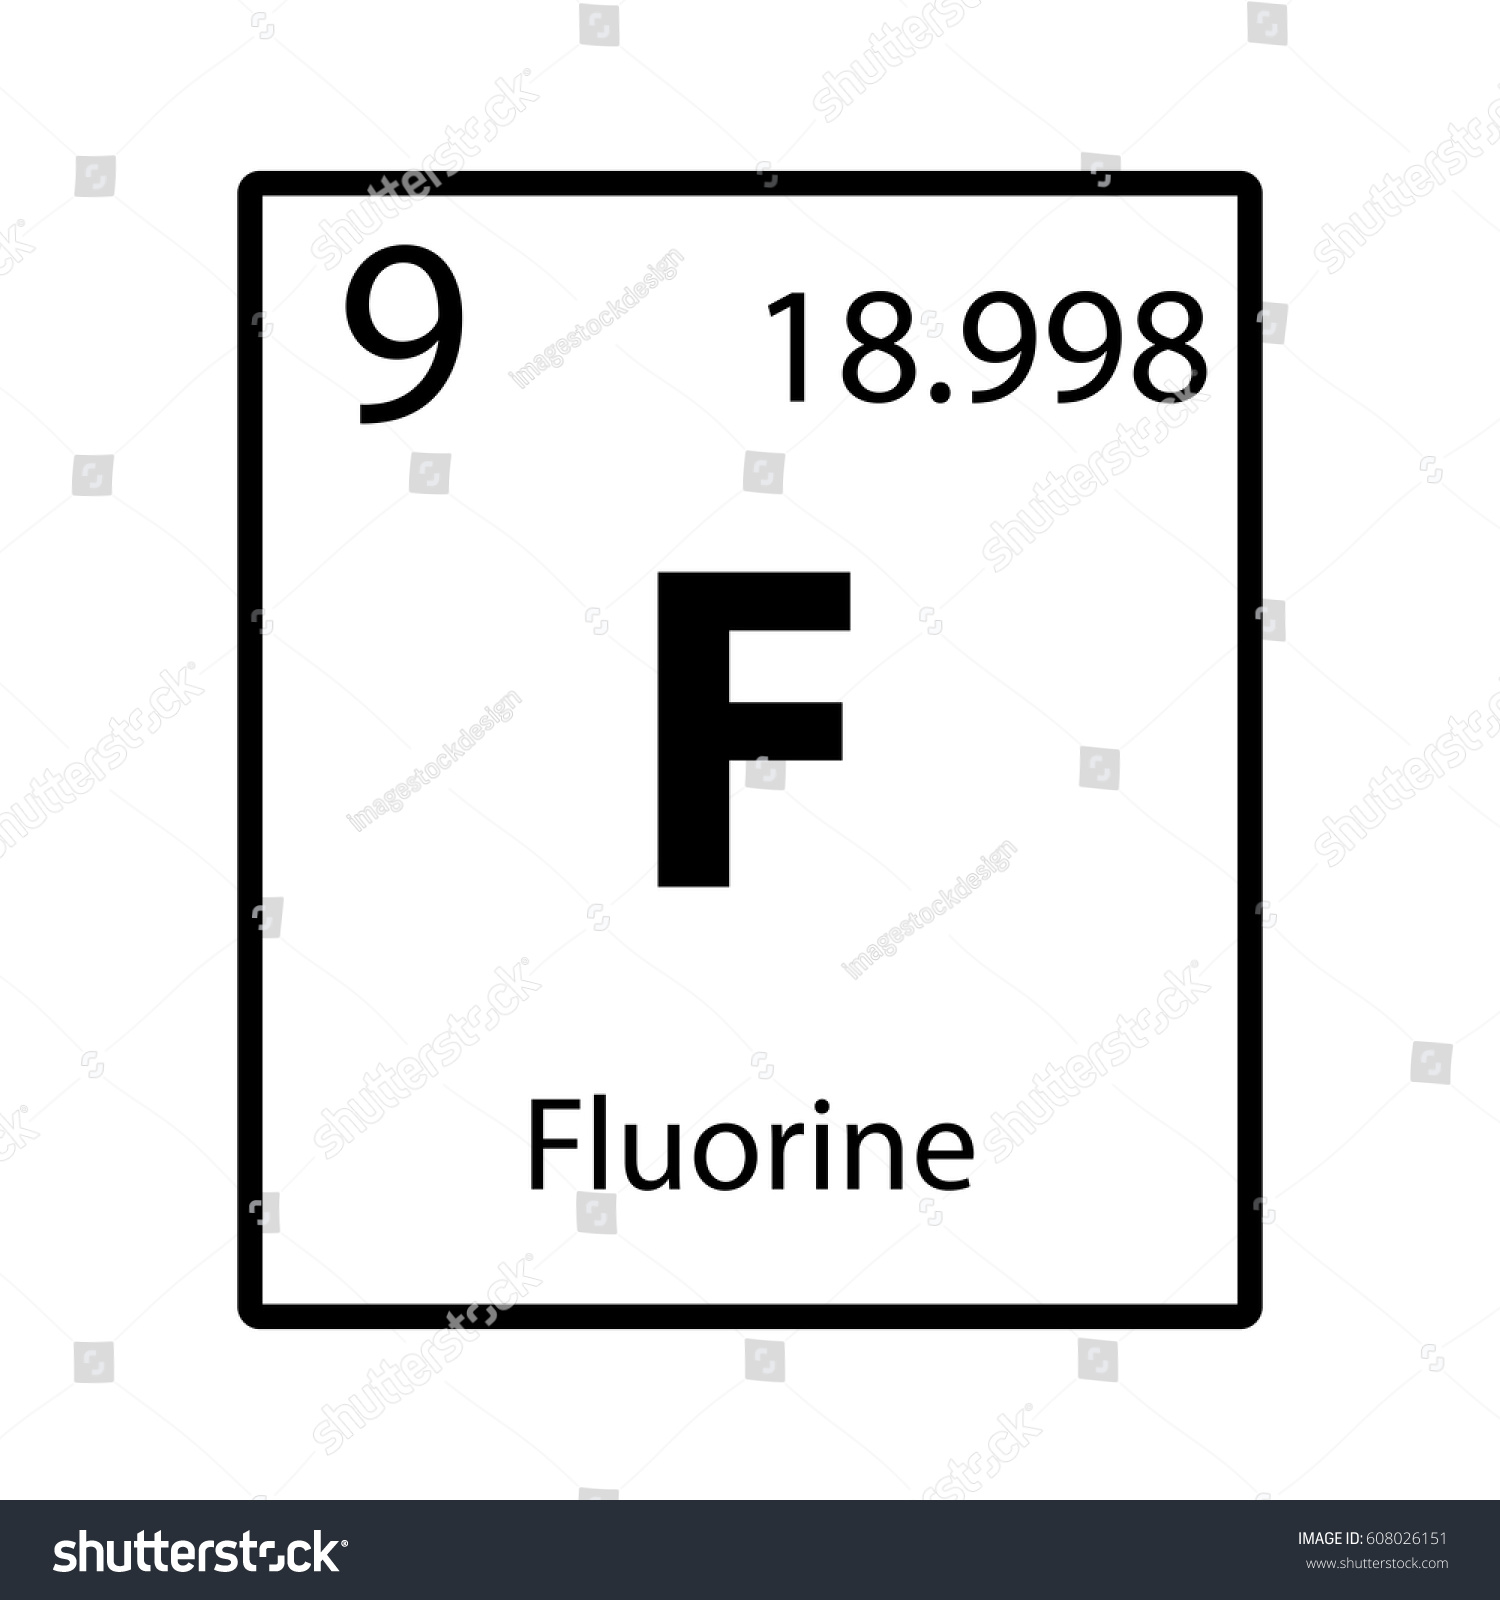 Fluorine on periodic table gallery periodic table images fluorine on periodic table image collections periodic table images fluorine on periodic table choice image periodic gamestrikefo Gallery